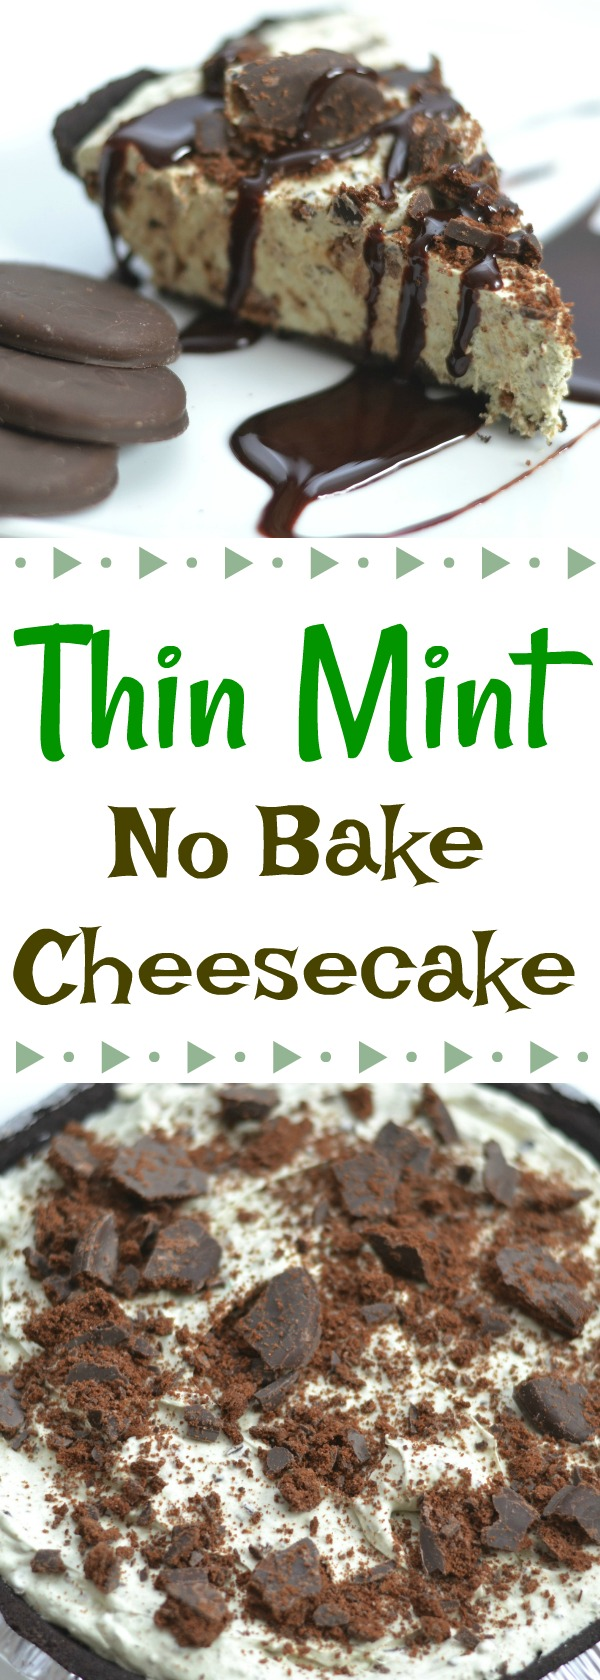 Thin Mint No Bake Cheesecake, easy no bake desserts, no bake cheesecake recipes, thin mint girl scout cookie recipes, using thin mints in recipes, best cheesecake recipes, best no bake dessert recipes